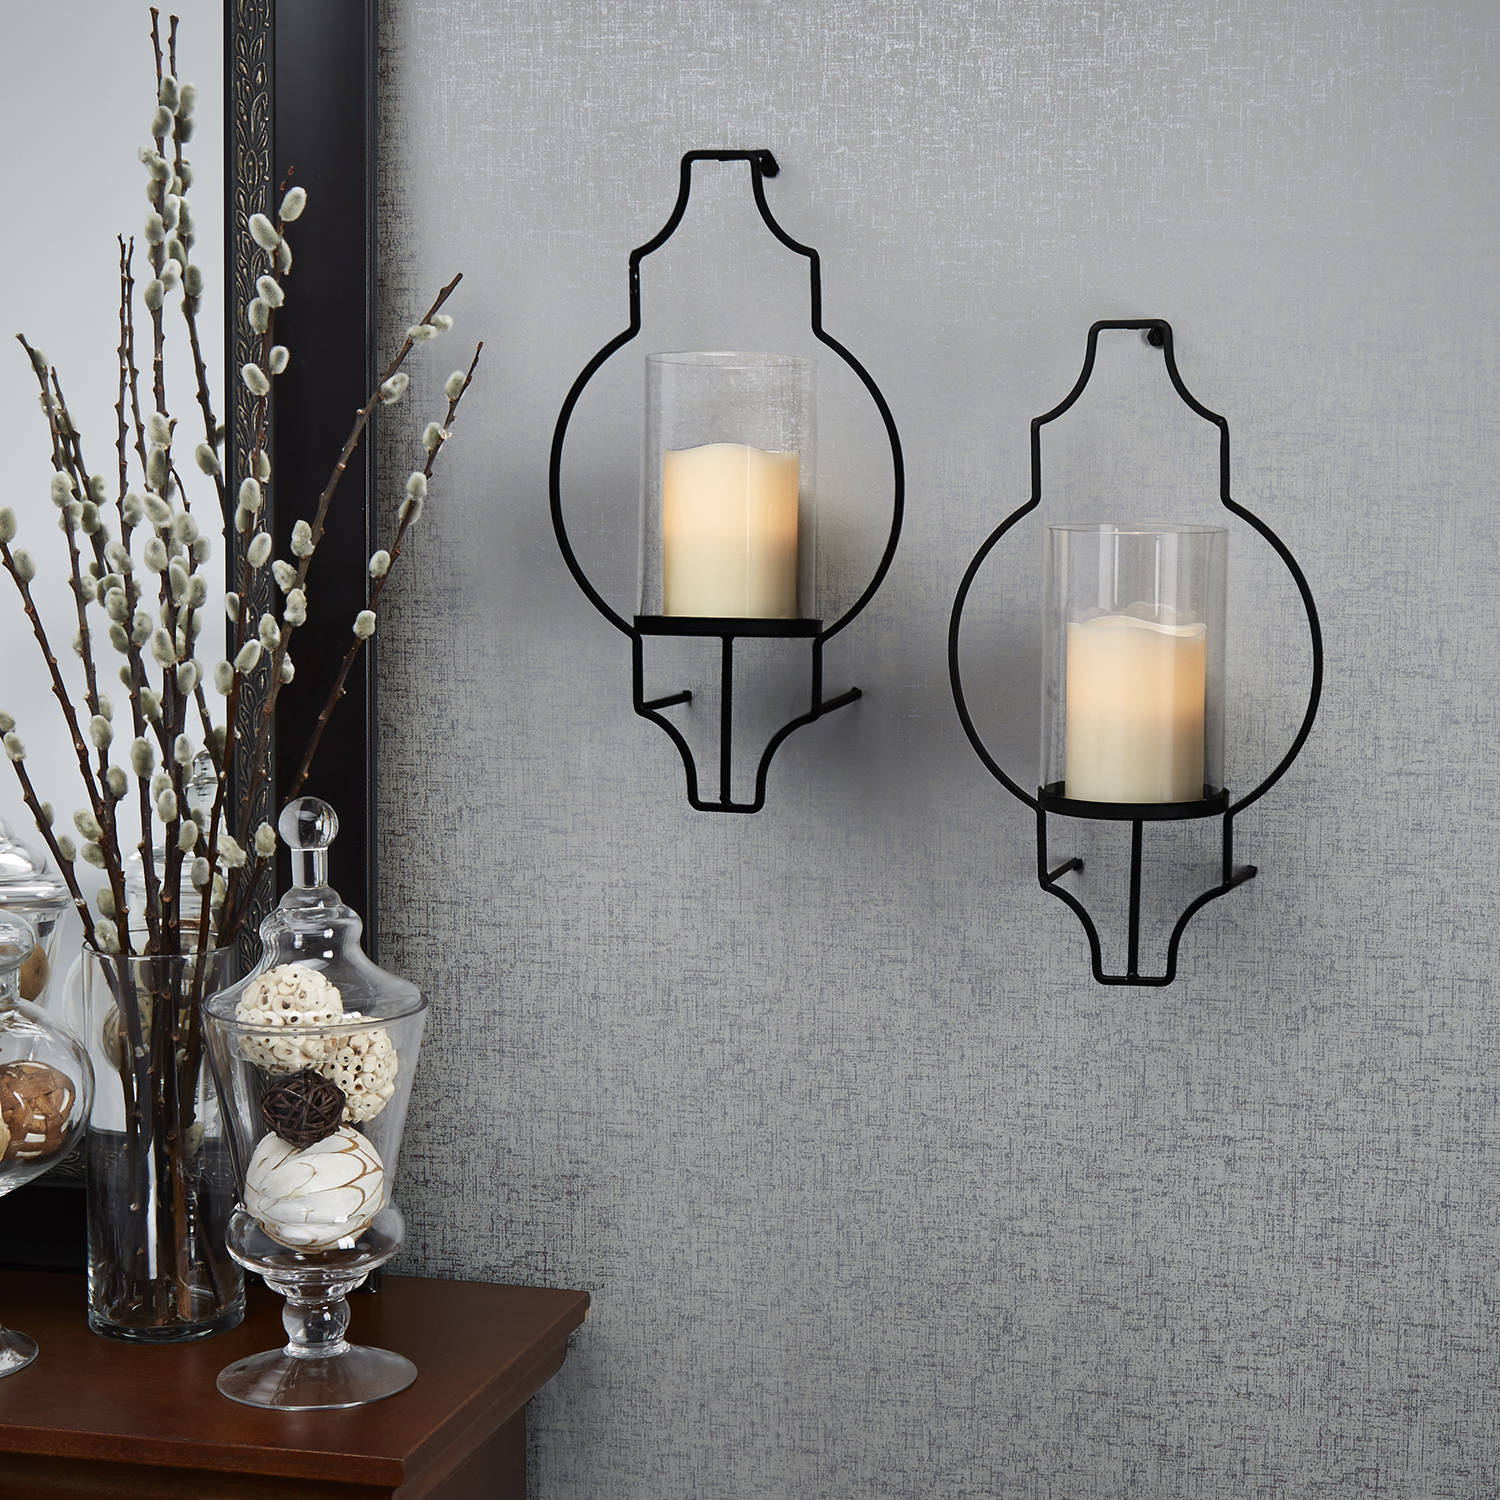 Lights.com | Flameless Candles | Pillar Candles ... on Wall Mounted Candle Sconce id=48713